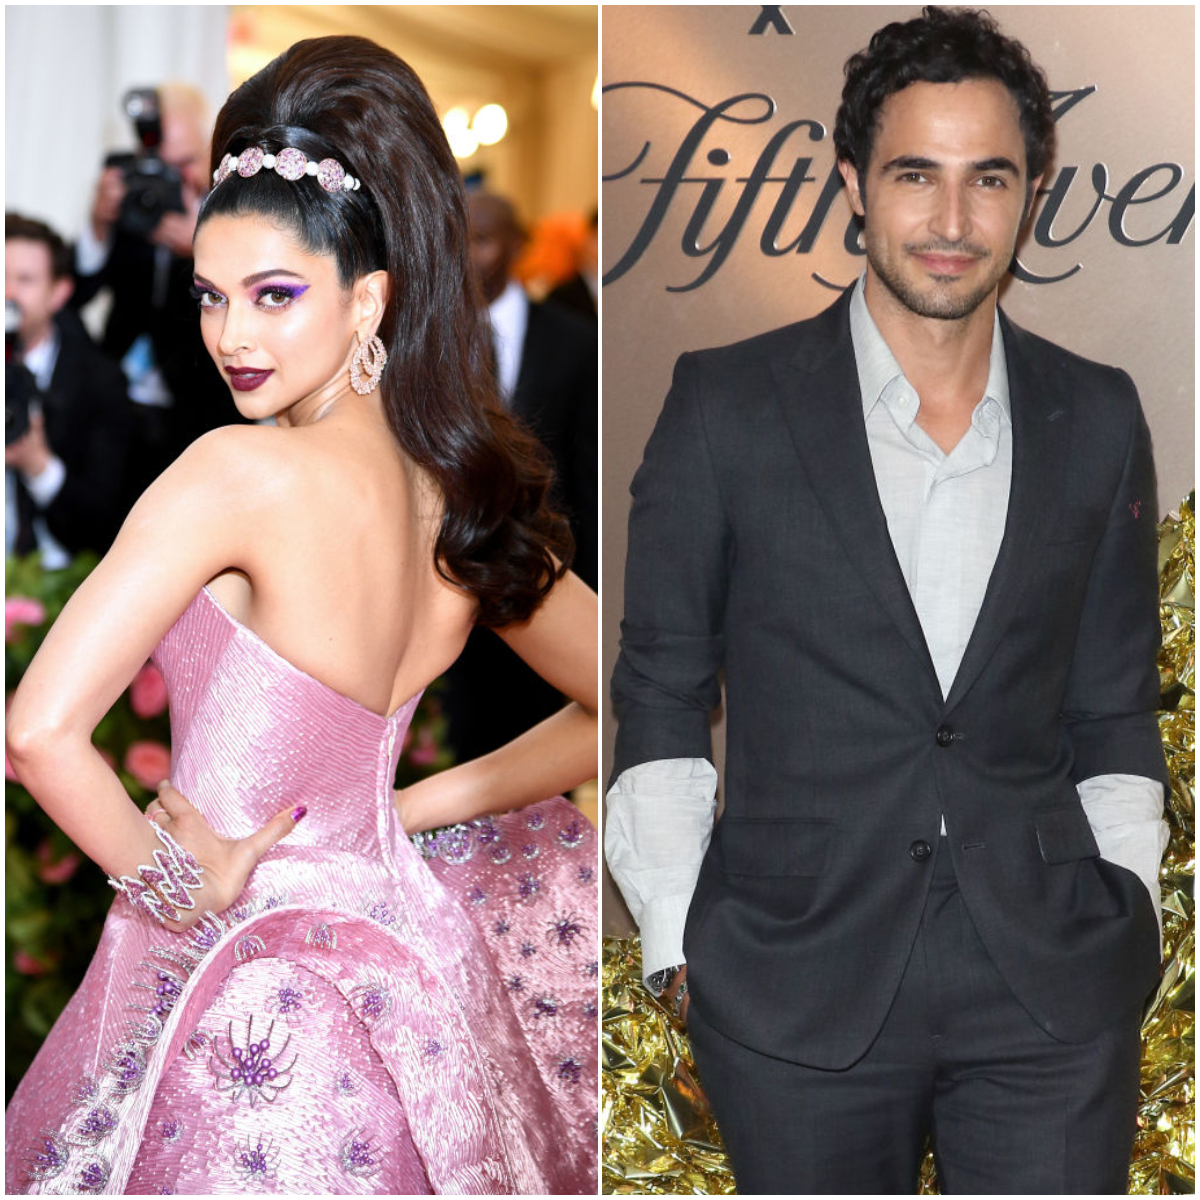 Deepika Padukone S Met Gala Outfit Designer Zac Posen Is Shutting Up Shop After 2 Decades Find Out Why Pinkvilla